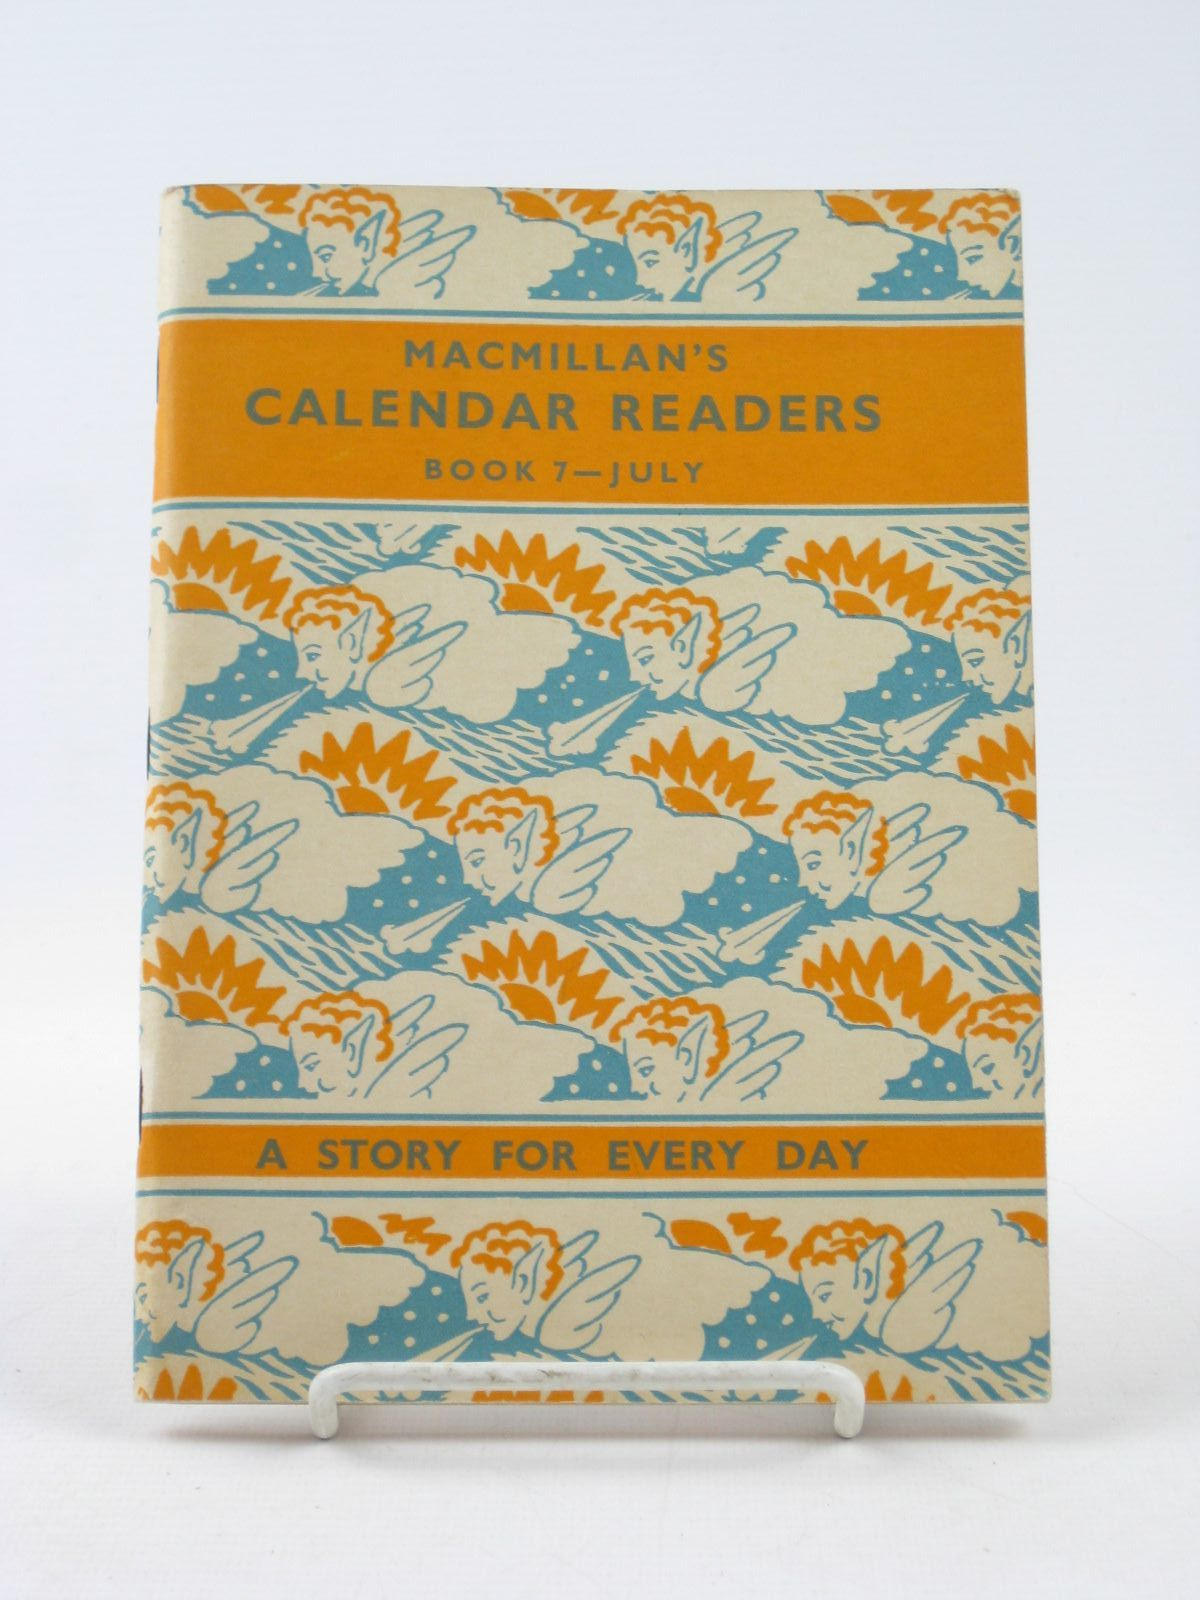 Photo of MACMILLAN'S CALENDAR READERS BOOK 7 - JULY written by Rutley, Cecily M. published by Macmillan & Co. Ltd. (STOCK CODE: 1402289)  for sale by Stella & Rose's Books